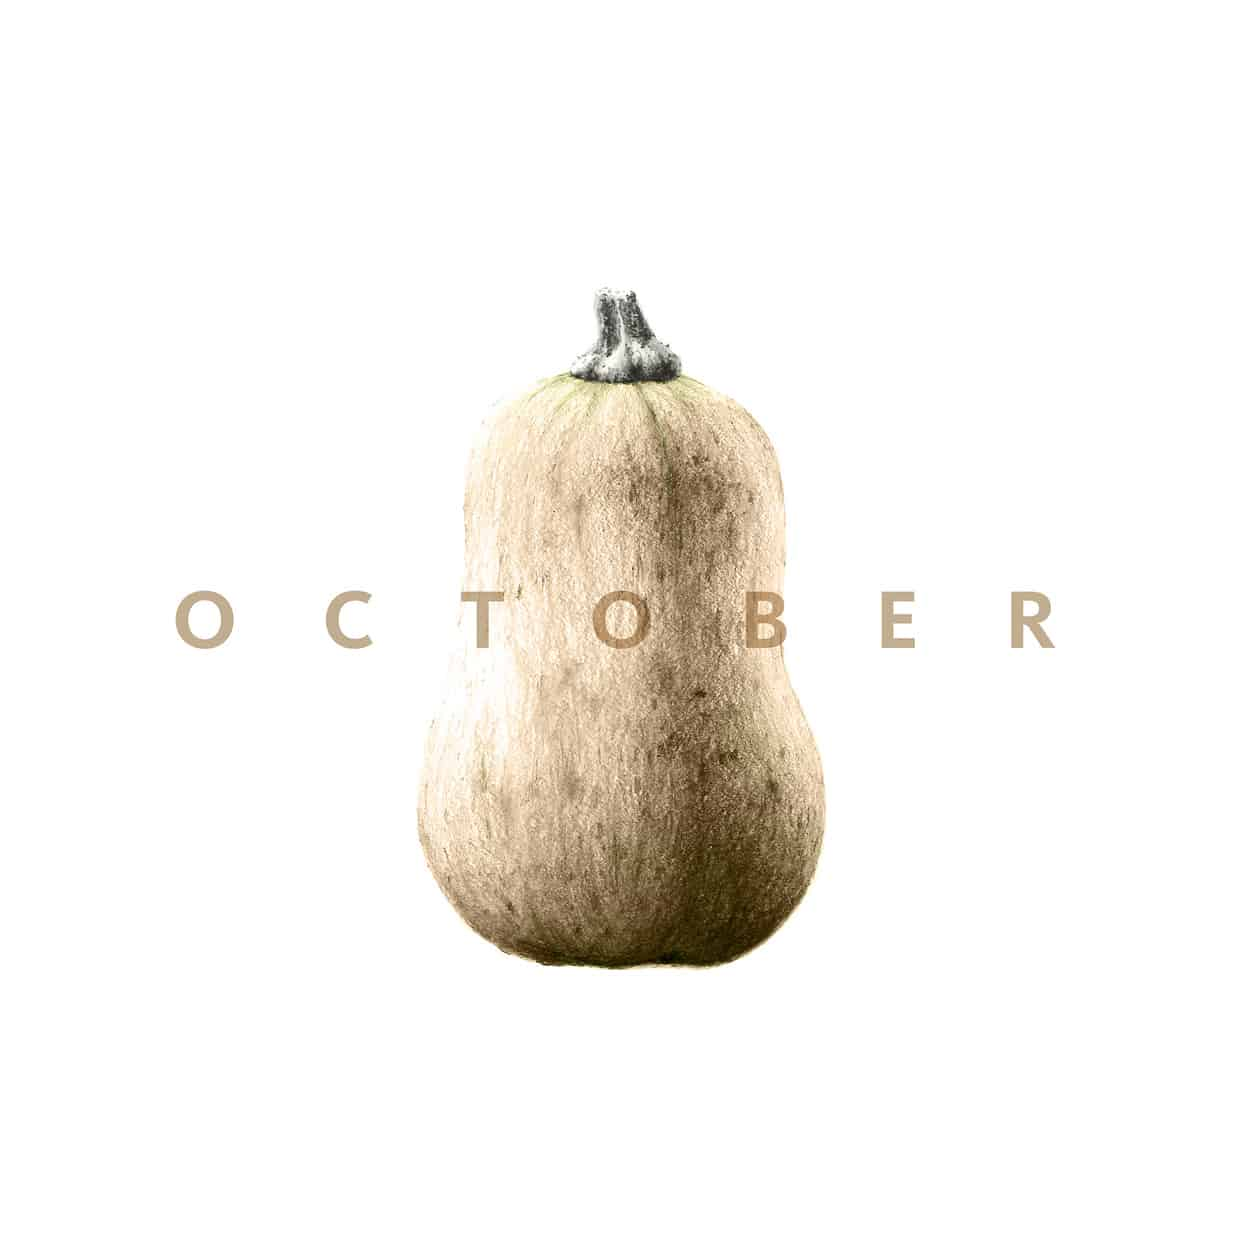 "Butternut squash with word ""October""."